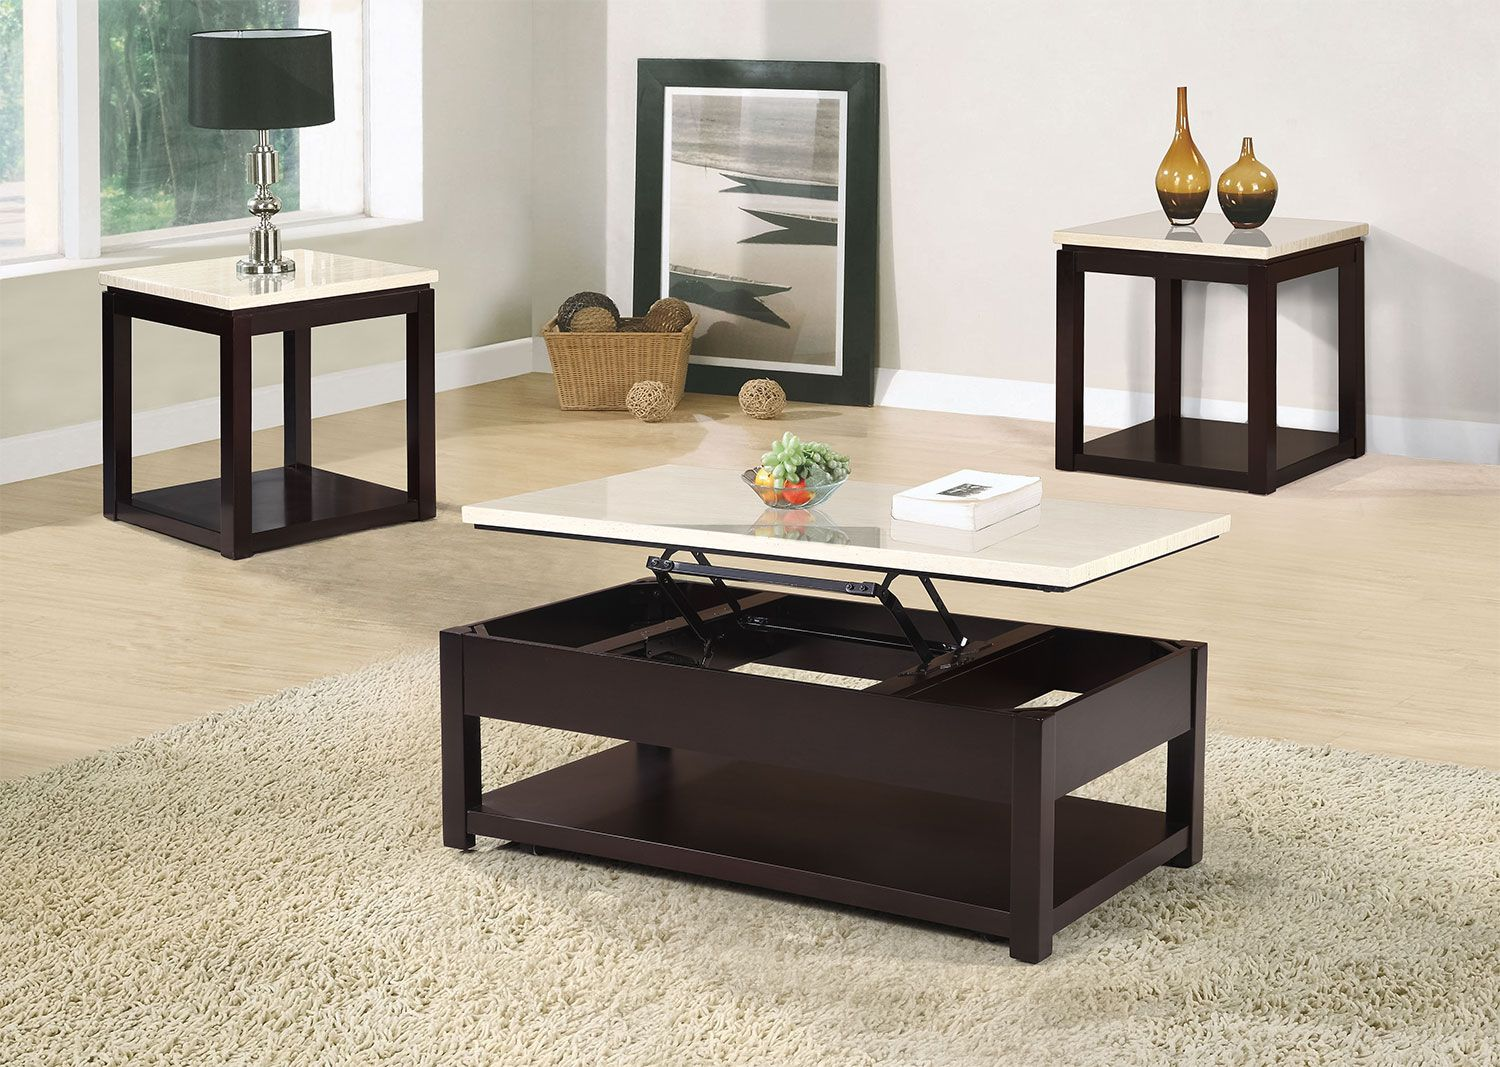 Enrich Your Home With This Fabulous And Functional Sicily Coffee Table Finished In Black And Featuring A Faux Marble Tablet Coffee Table Table Youth Furniture [ 1067 x 1500 Pixel ]